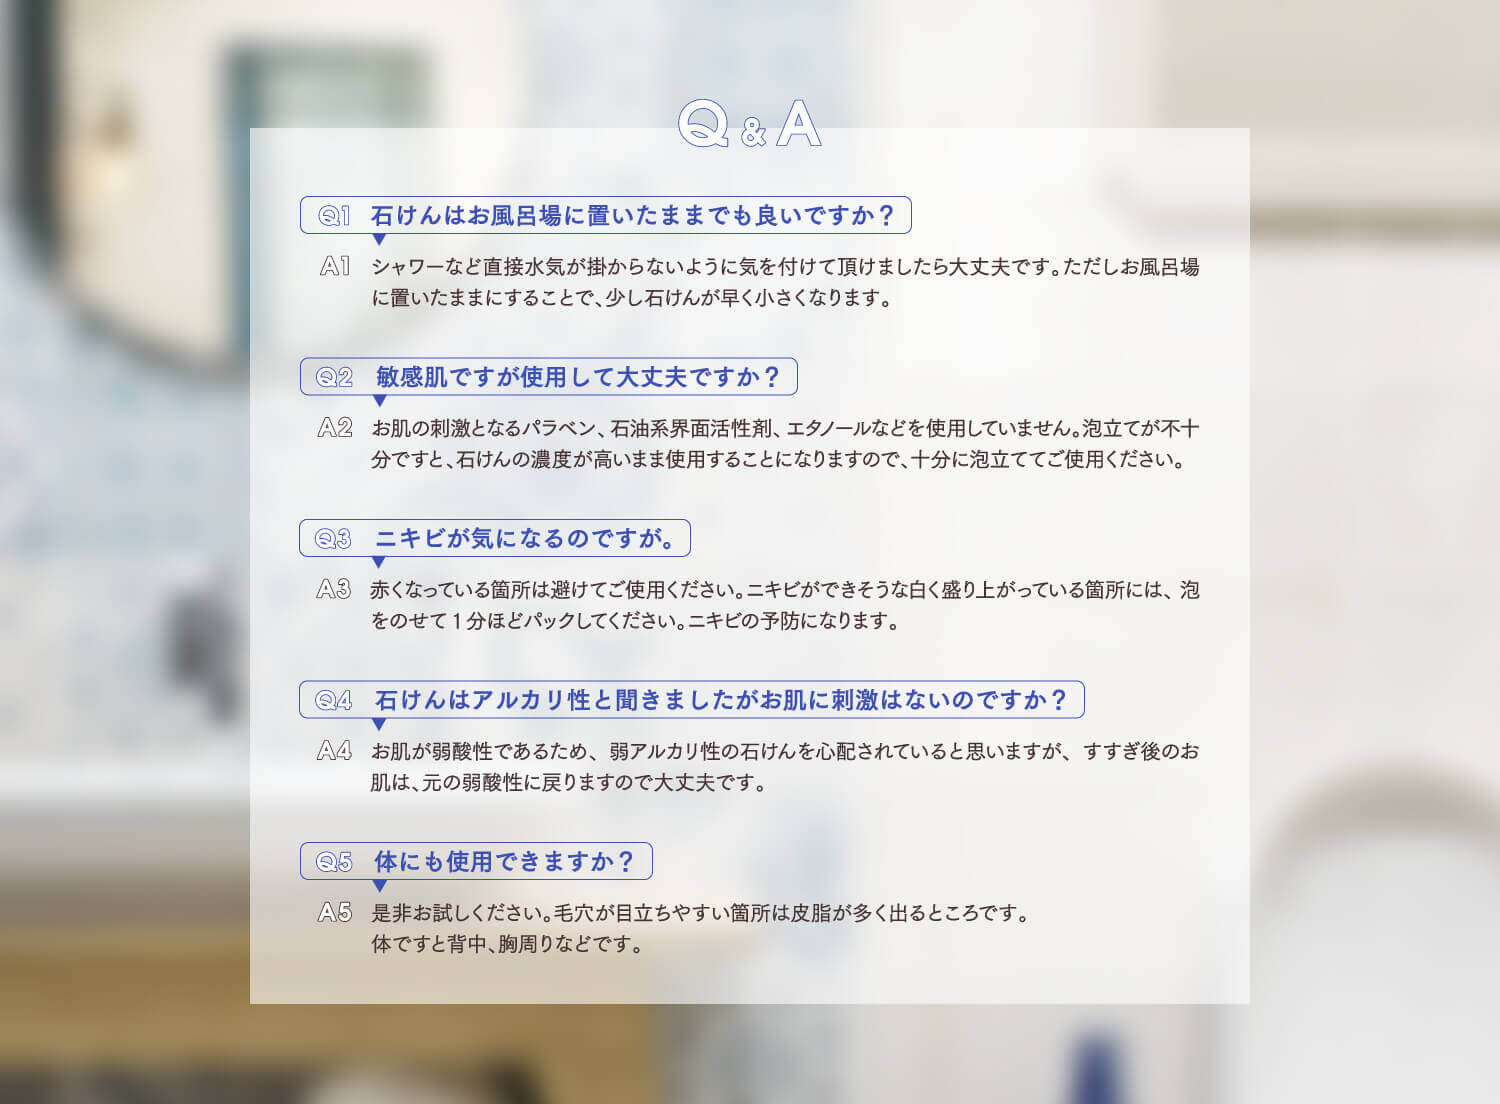 CRYSTUAL CLEAR SOAP・CRYSTUAL SUPPLEMENT Q&A